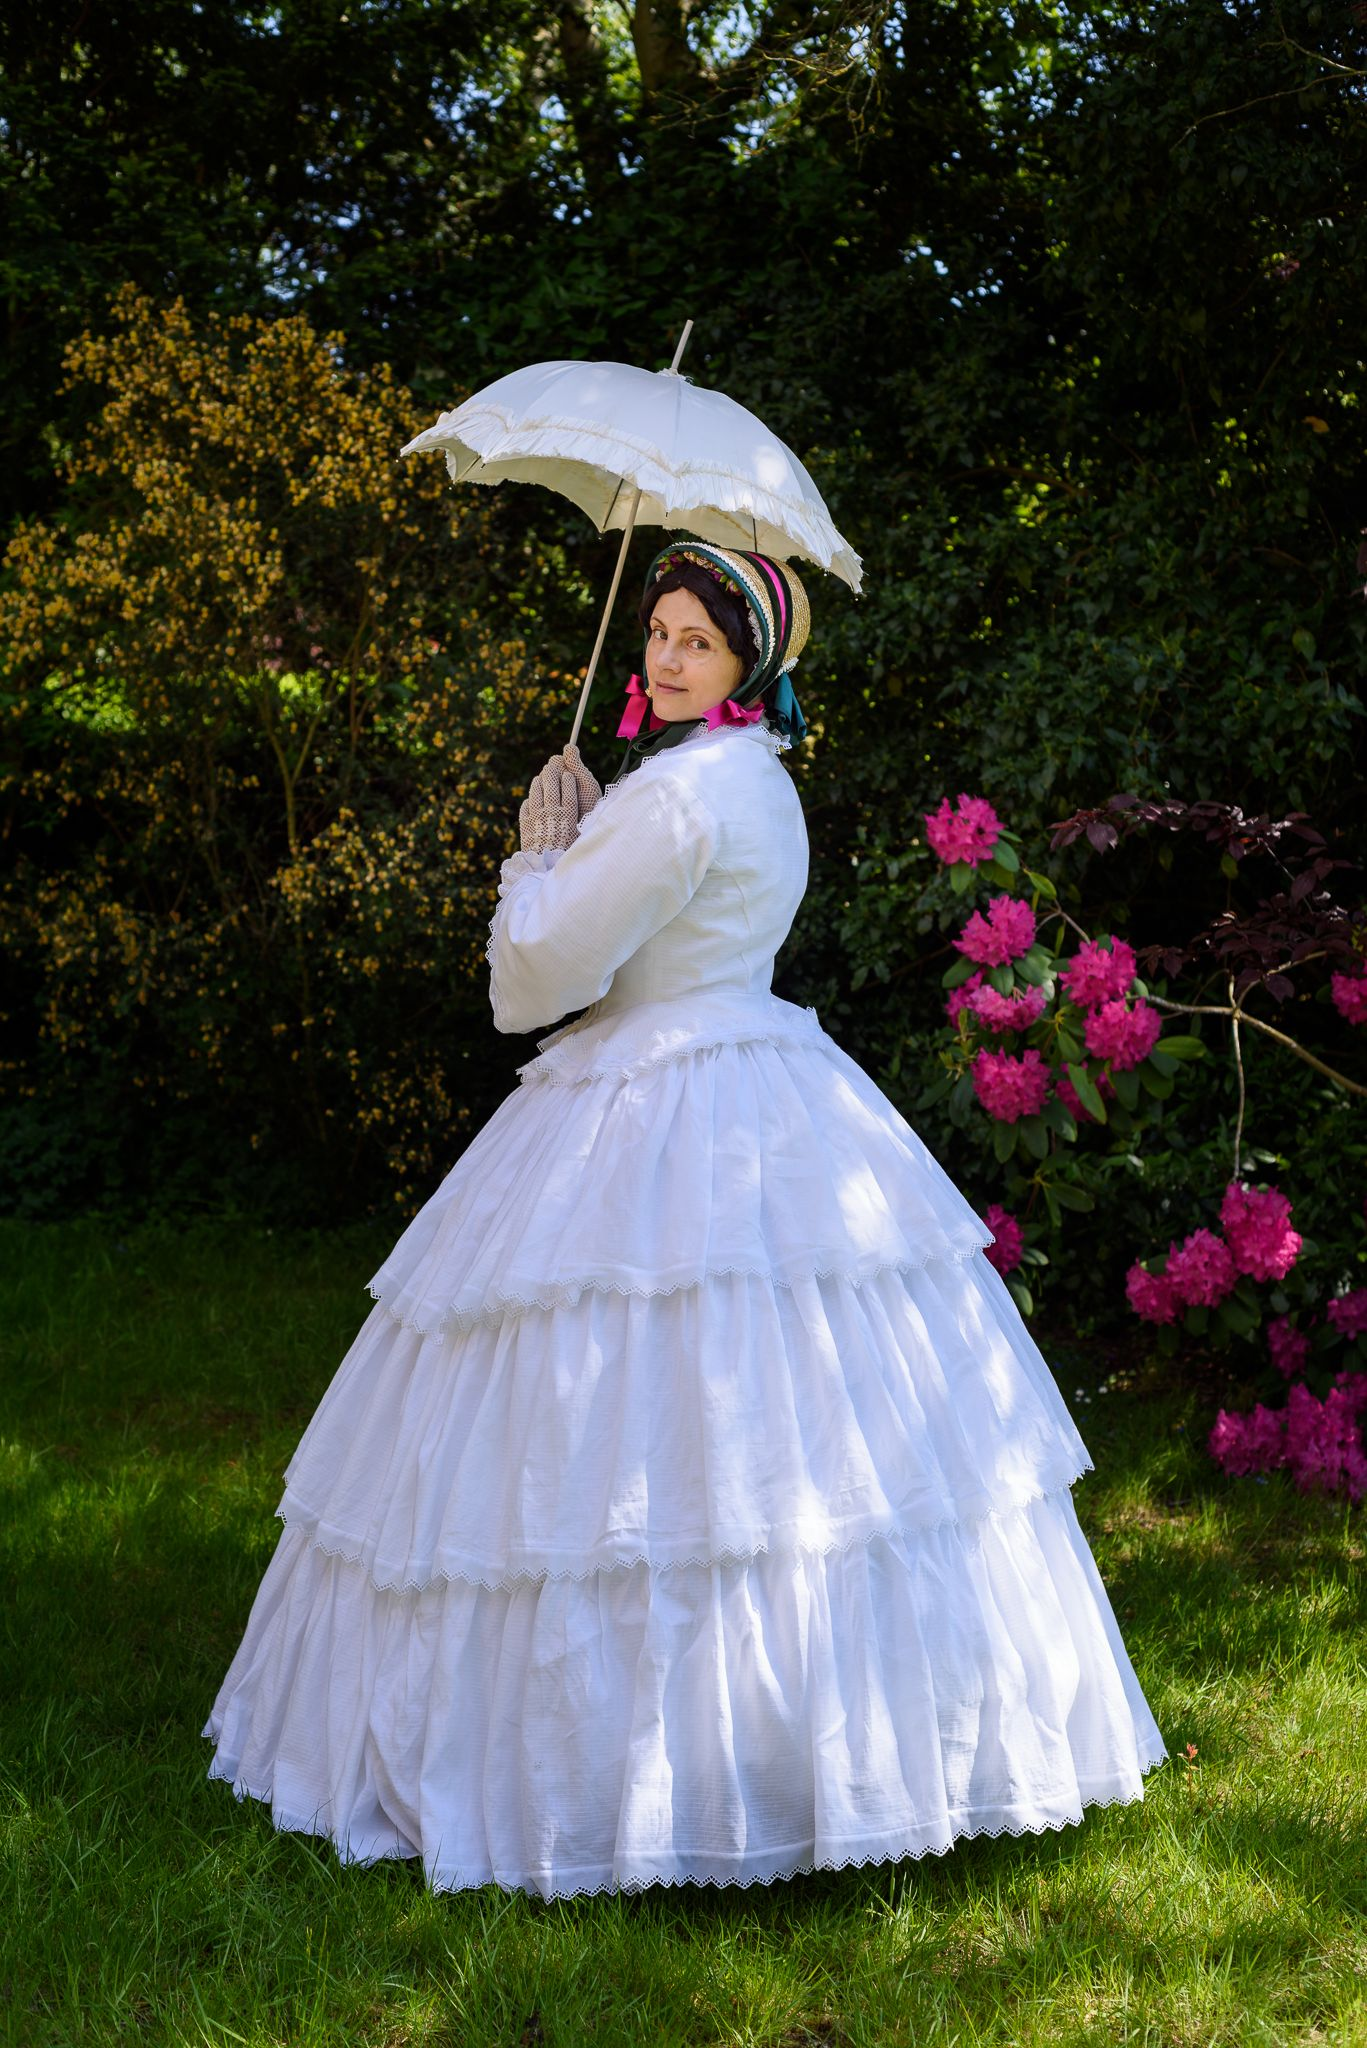 1850s Summer Gown On A Crinoline By Prior Attire Historical Dresses Victorian Fashion Edwardian Clothing [ 2048 x 1367 Pixel ]